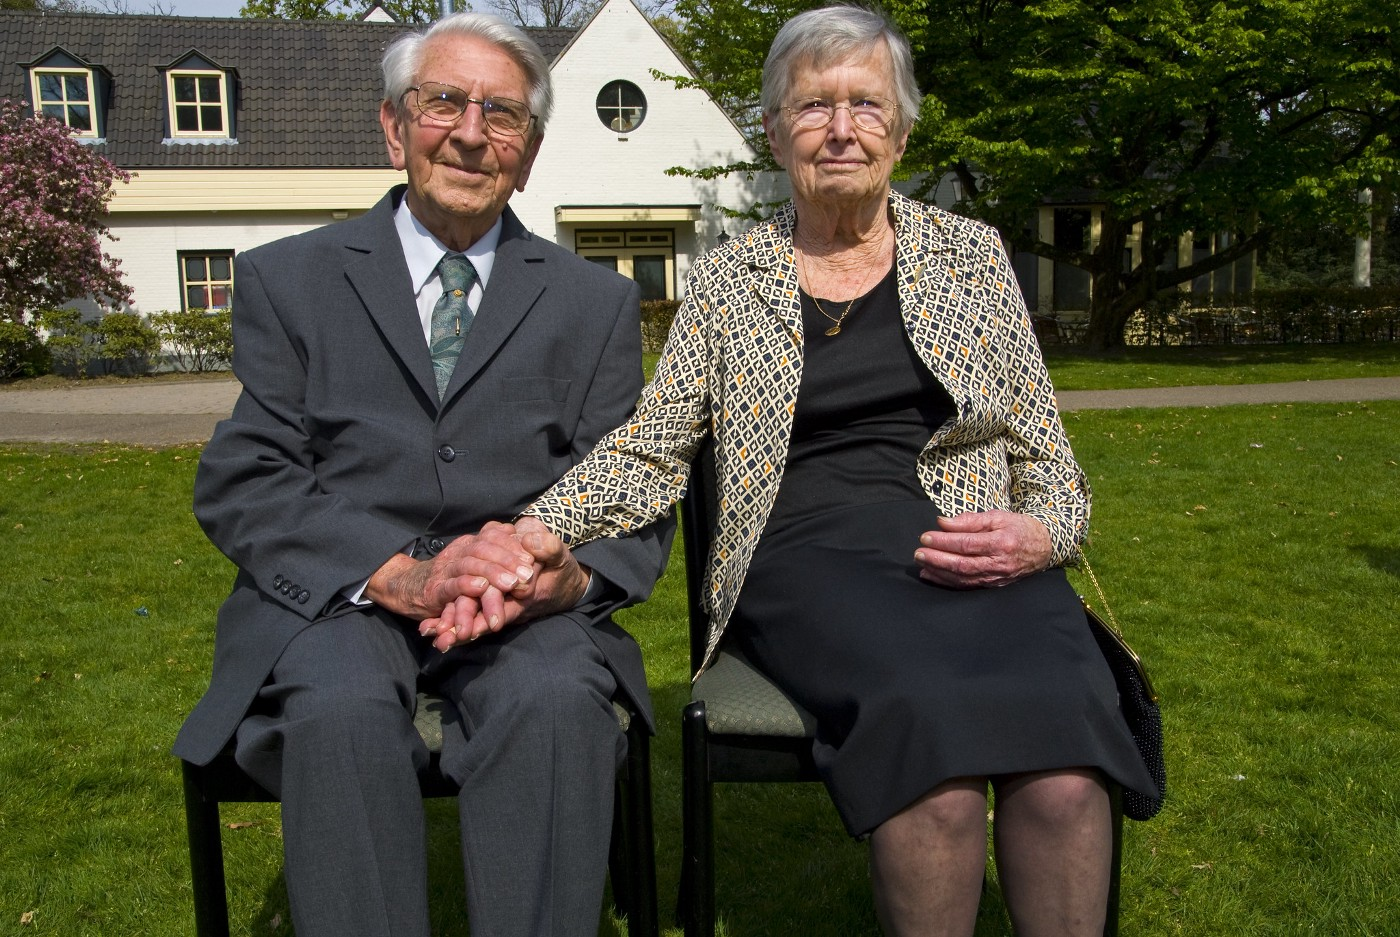 white grandmother and grandfather on chairs on lawn. family, mental health, parenting, relationships, society, equality, injustice, politics, future